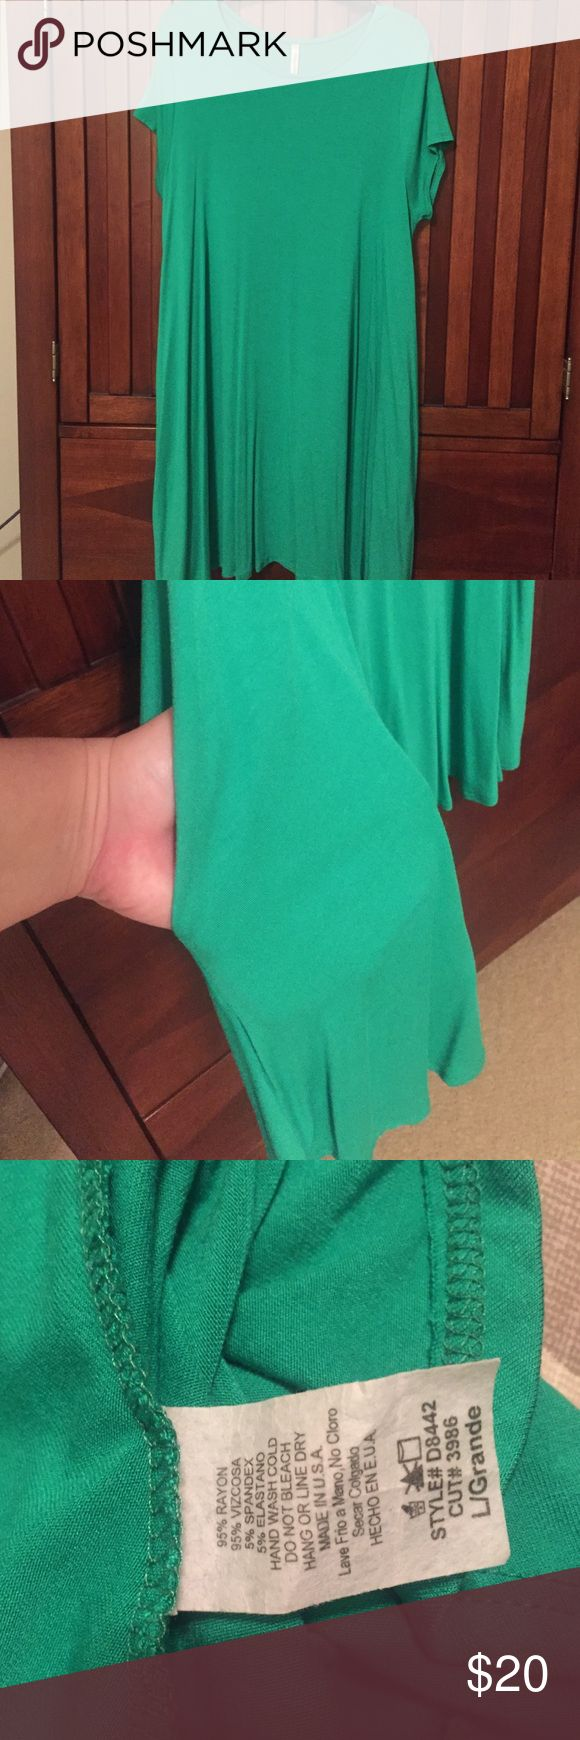 Kelly Green Swing Dress with Pockets Kelly Green Swing Dress with Pockets! Worn a handful of times but looks new!  I'll be glad to provide measurements upon request! Bought from a boutique. Mittoshop Dresses